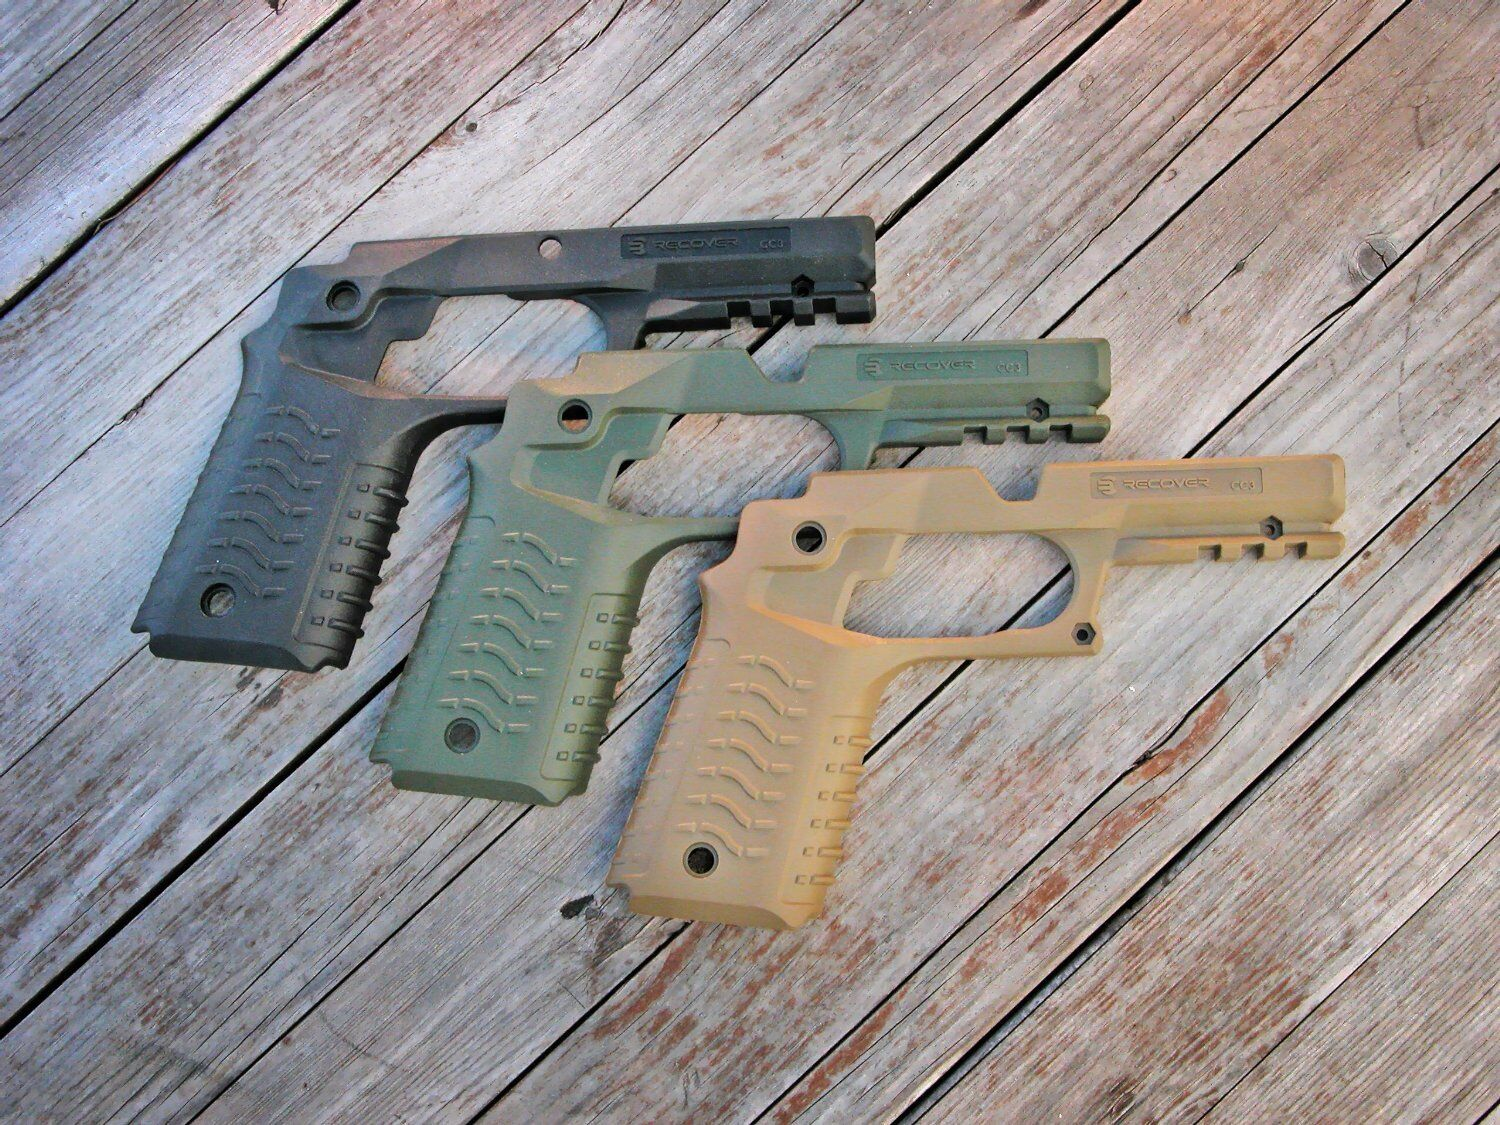 Recover Tactical Grip & Rail System For 1911 & Beretta Pistols